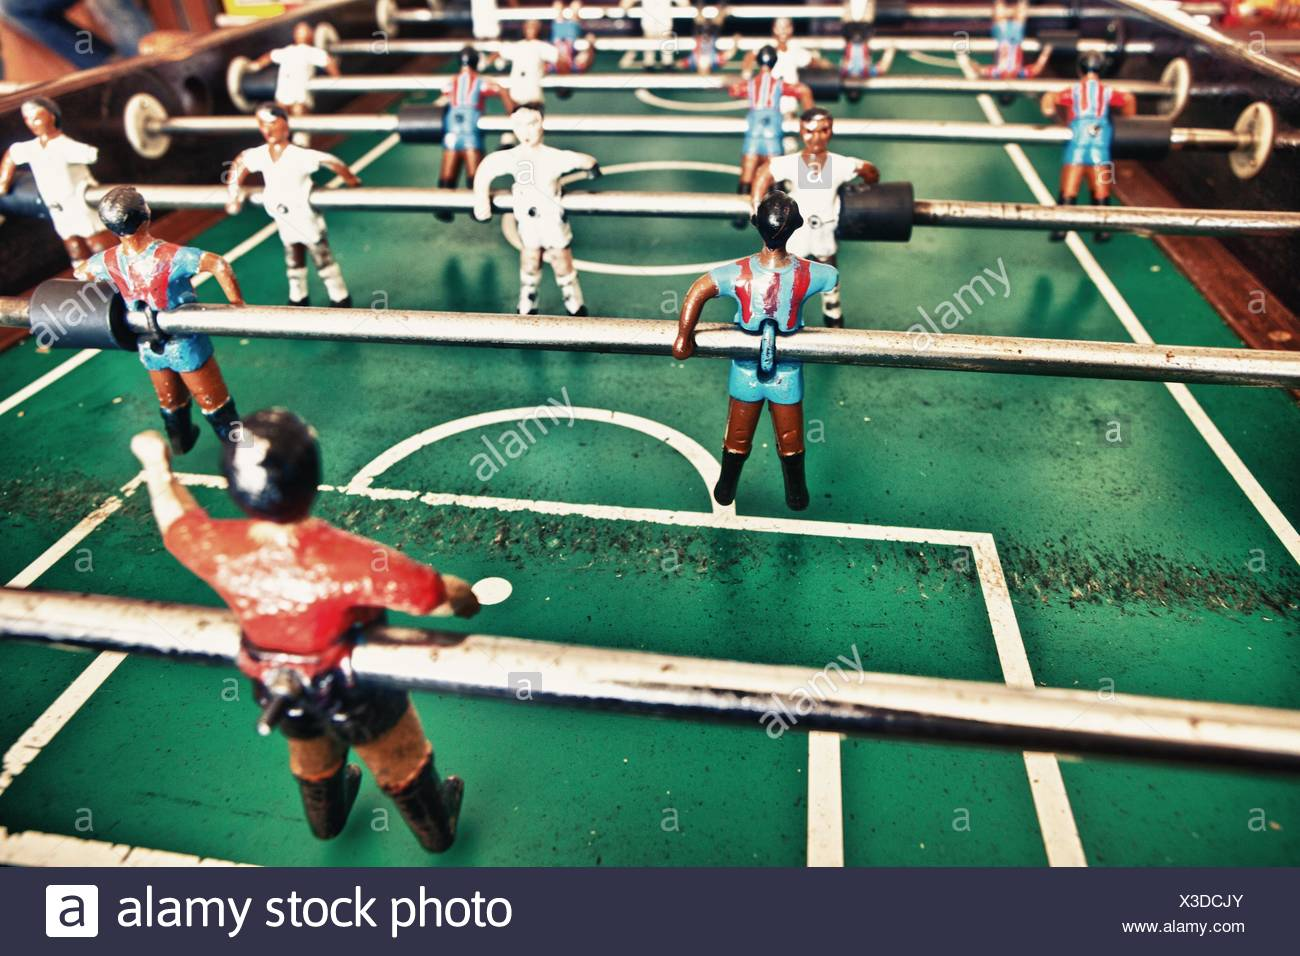 Table football in the bar, visible figures of toy mini football players wearing Real Madrid and Barcelona soccer team. - Stock Image